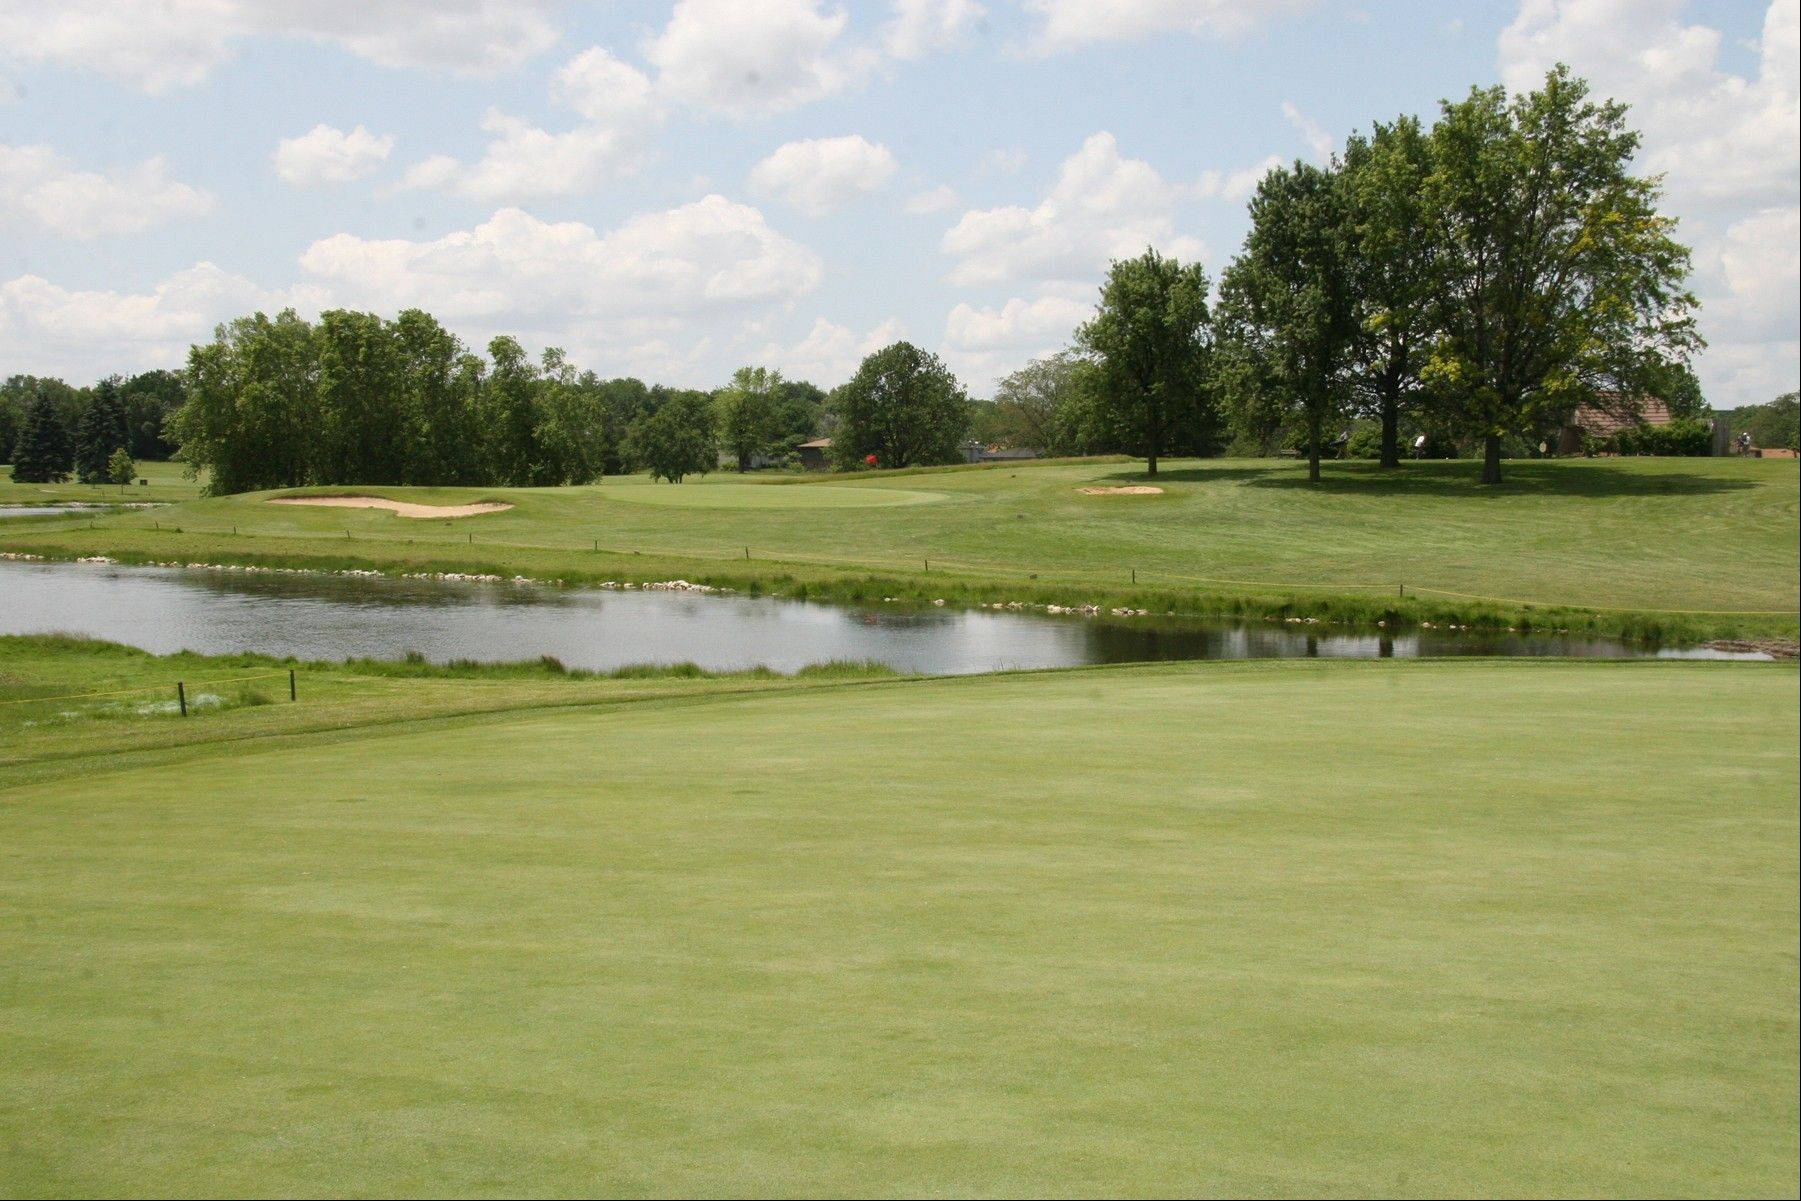 Green Meadows Golf Course in Westmont could be improved as part of a proposed partnership the DuPage County Forest Preserve District might form with other golf organizations.